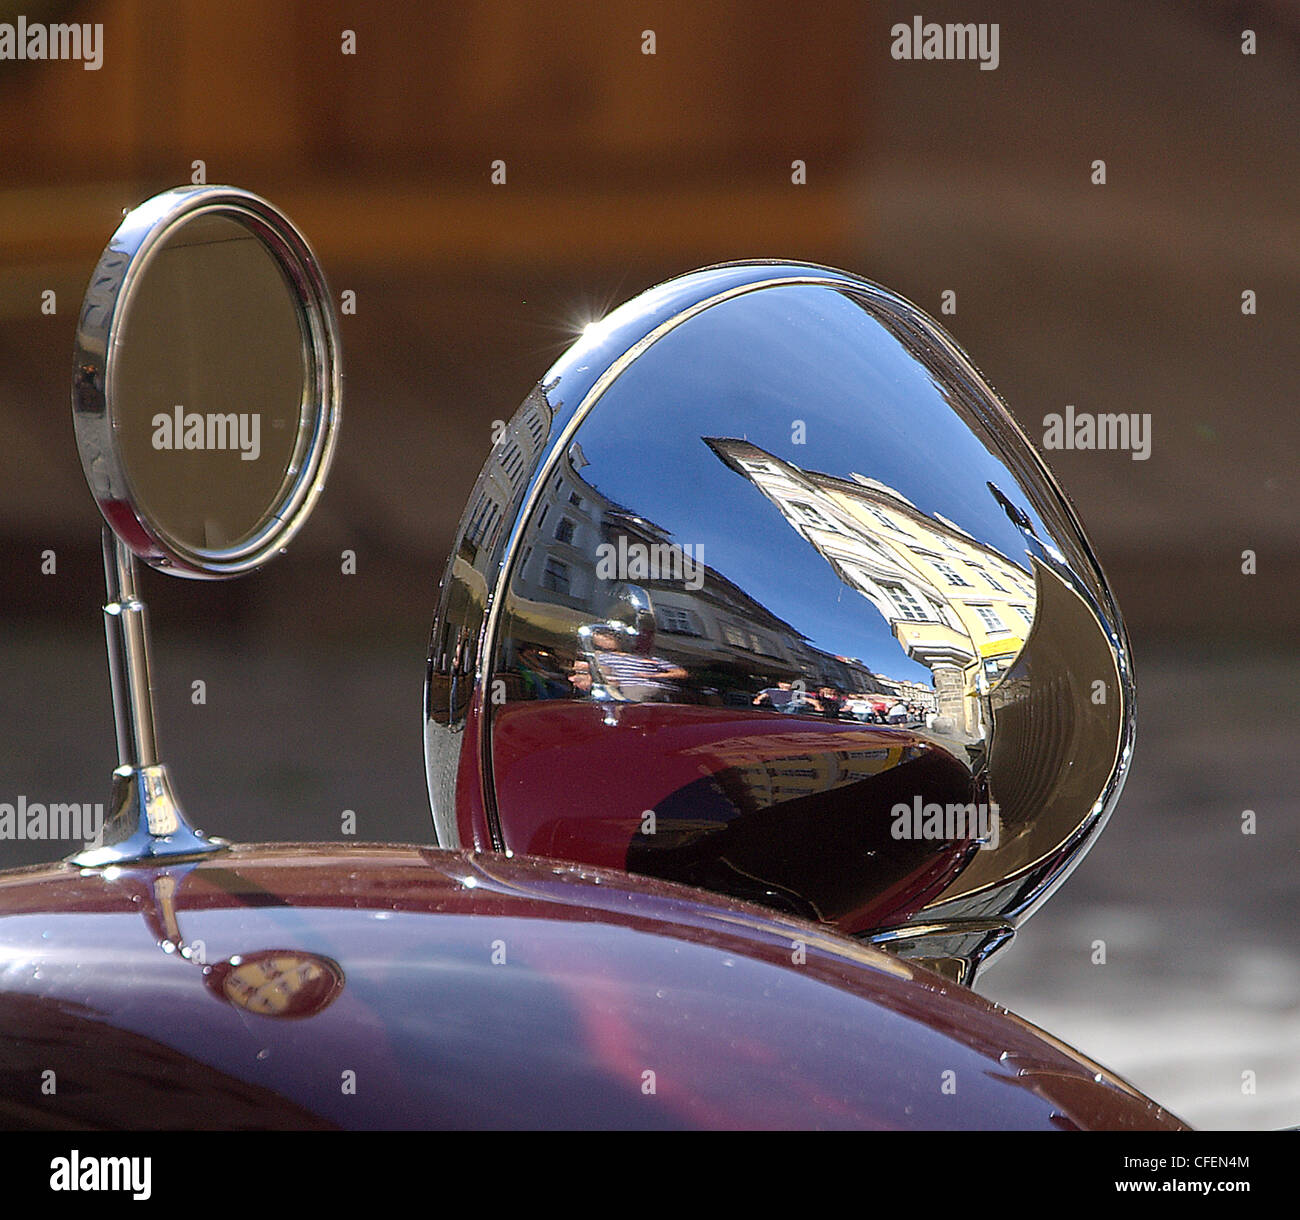 Distorted reflection of a an old town square in Summer in the chromed headlight of a vintage car. Double reflection of the image Stock Photo